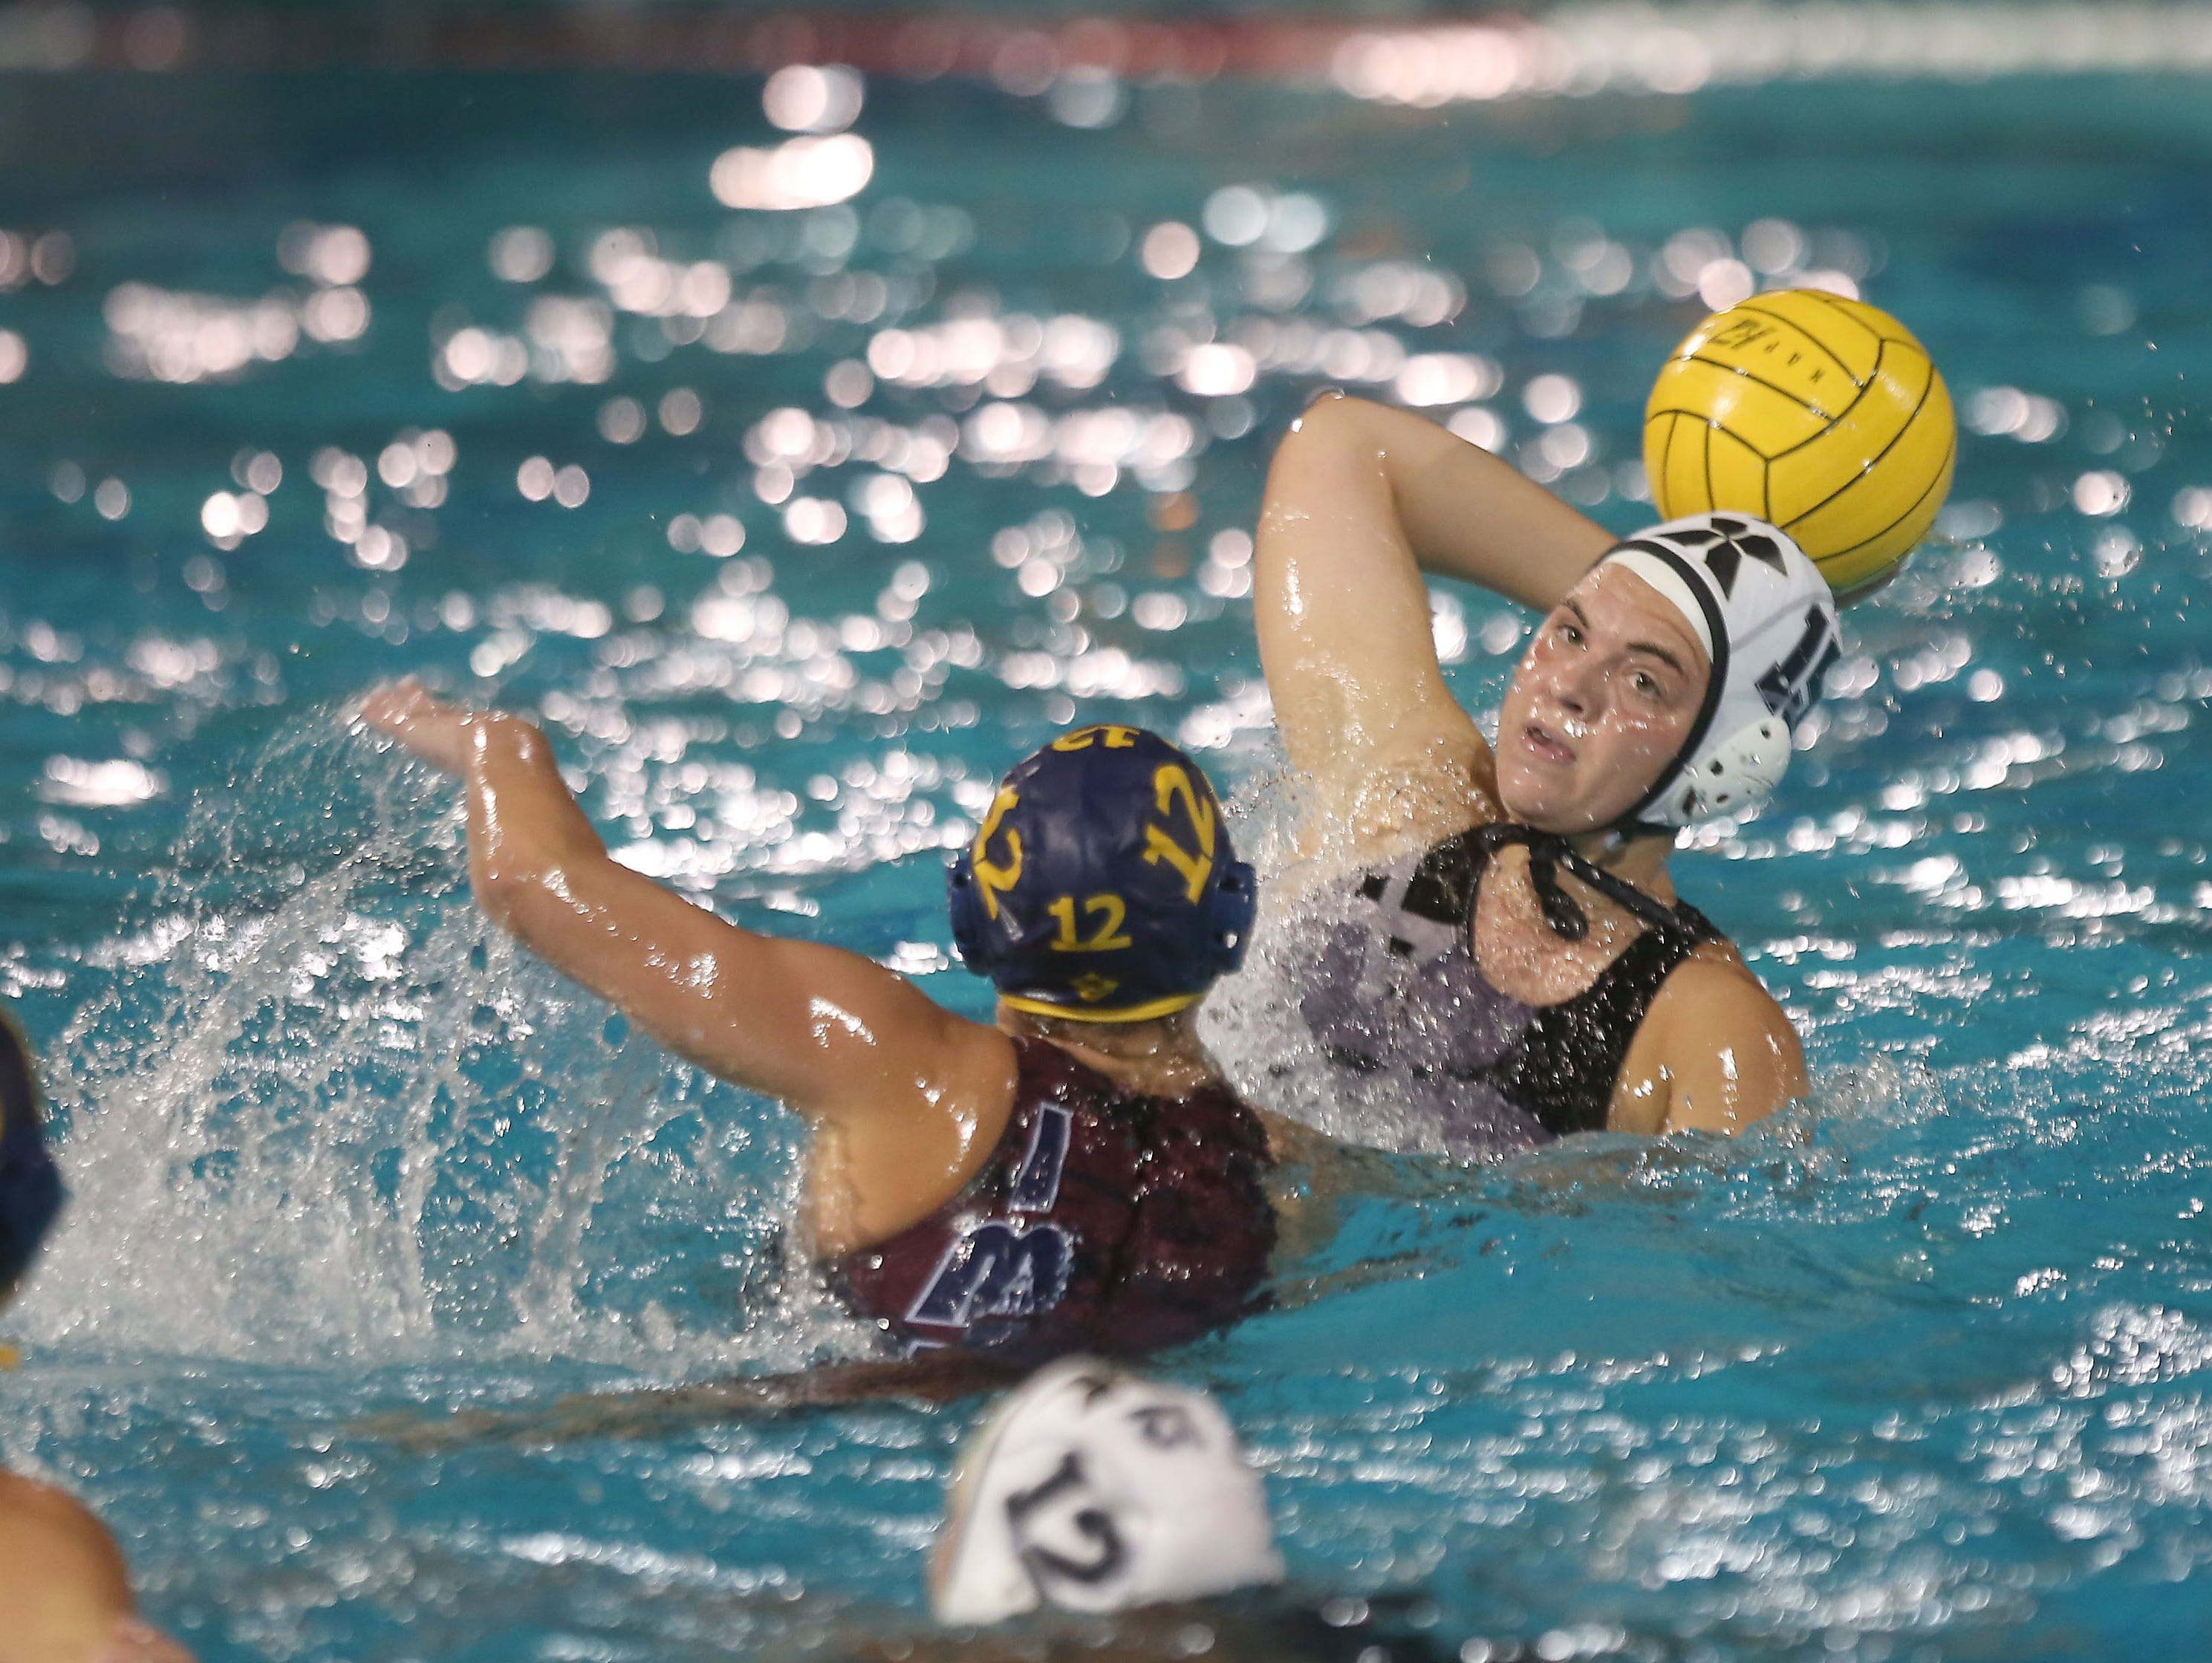 Blair Burlilngame of Xavier takes a shot against La Quinta in water polo, February 8, 2016.